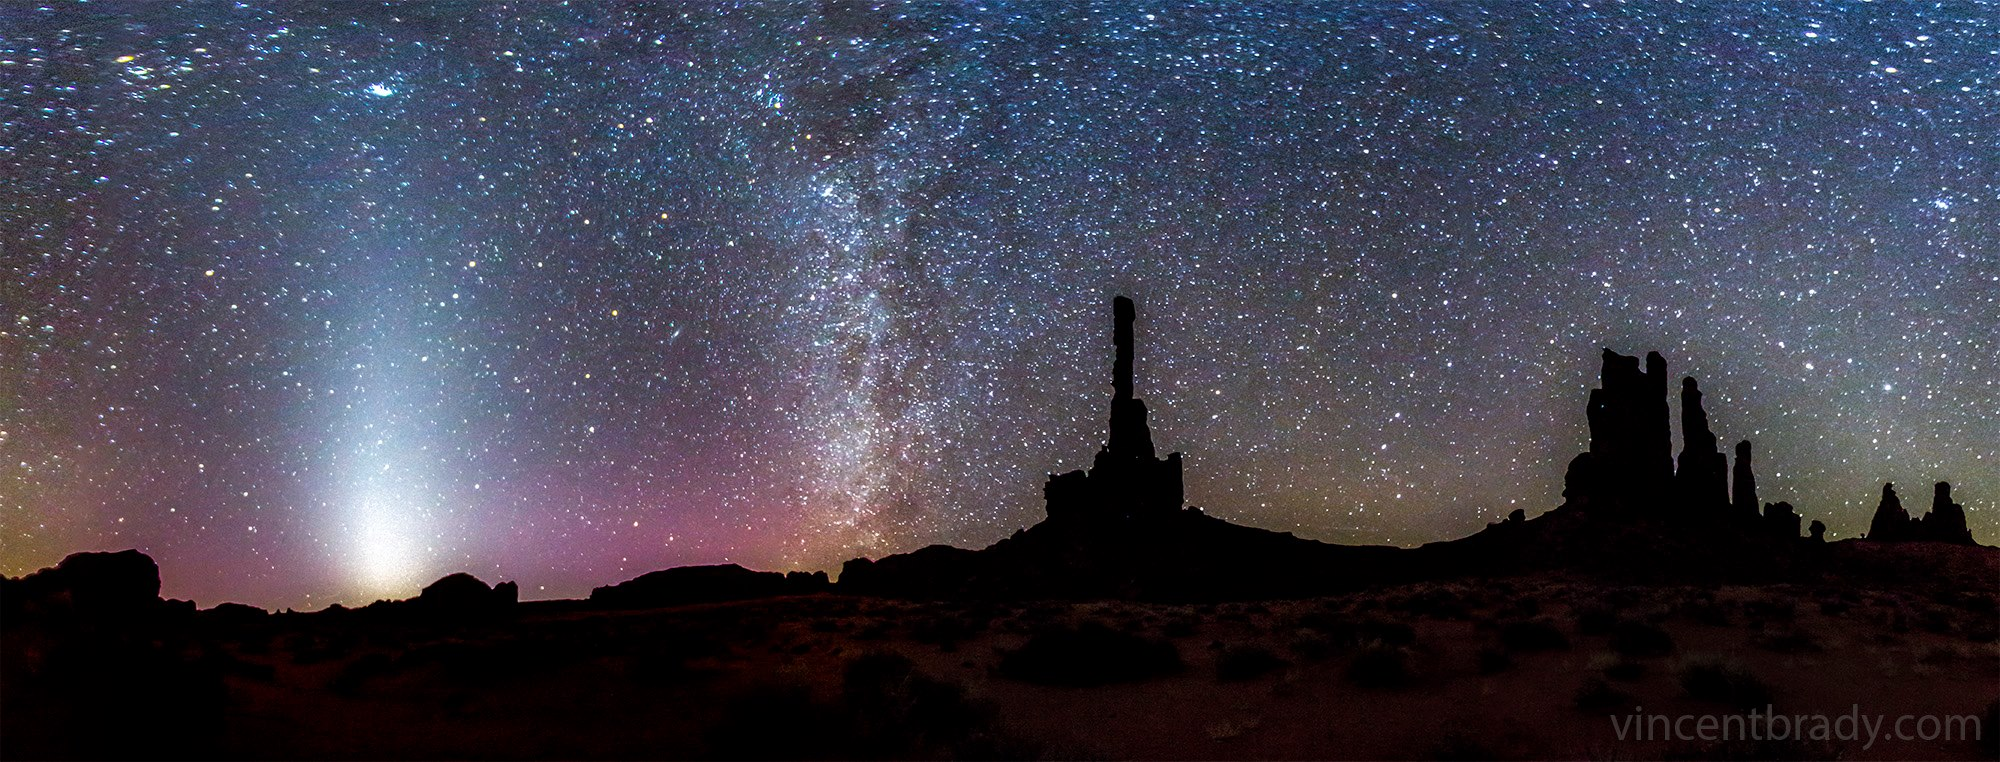 Zodiacal Light In Monument Valley Arizona Today S Image